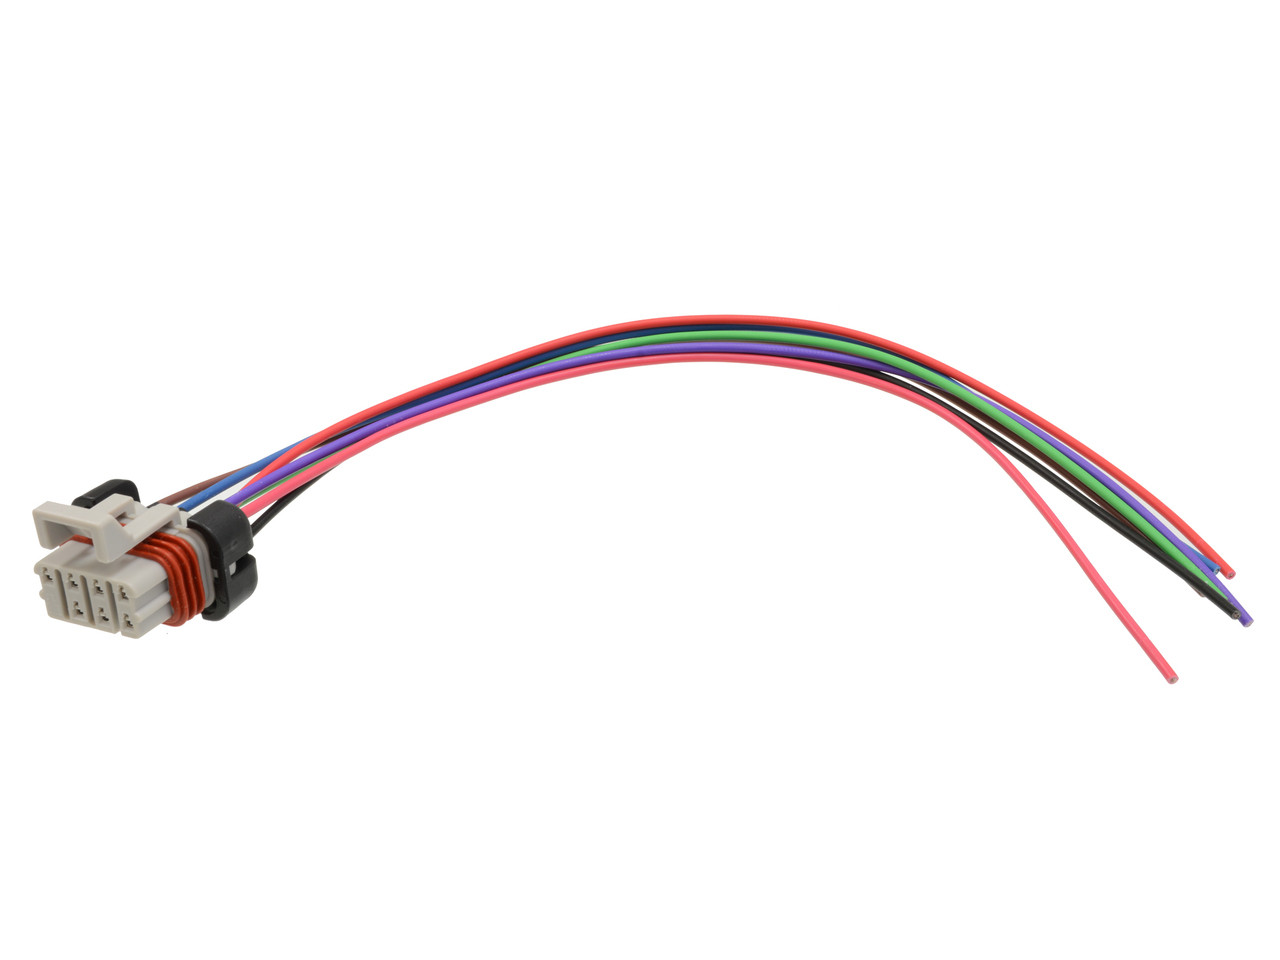 small resolution of  gm ignition coil wiring harness 2005 dodge dakota ignition harness on obd2 to obd1 jumper